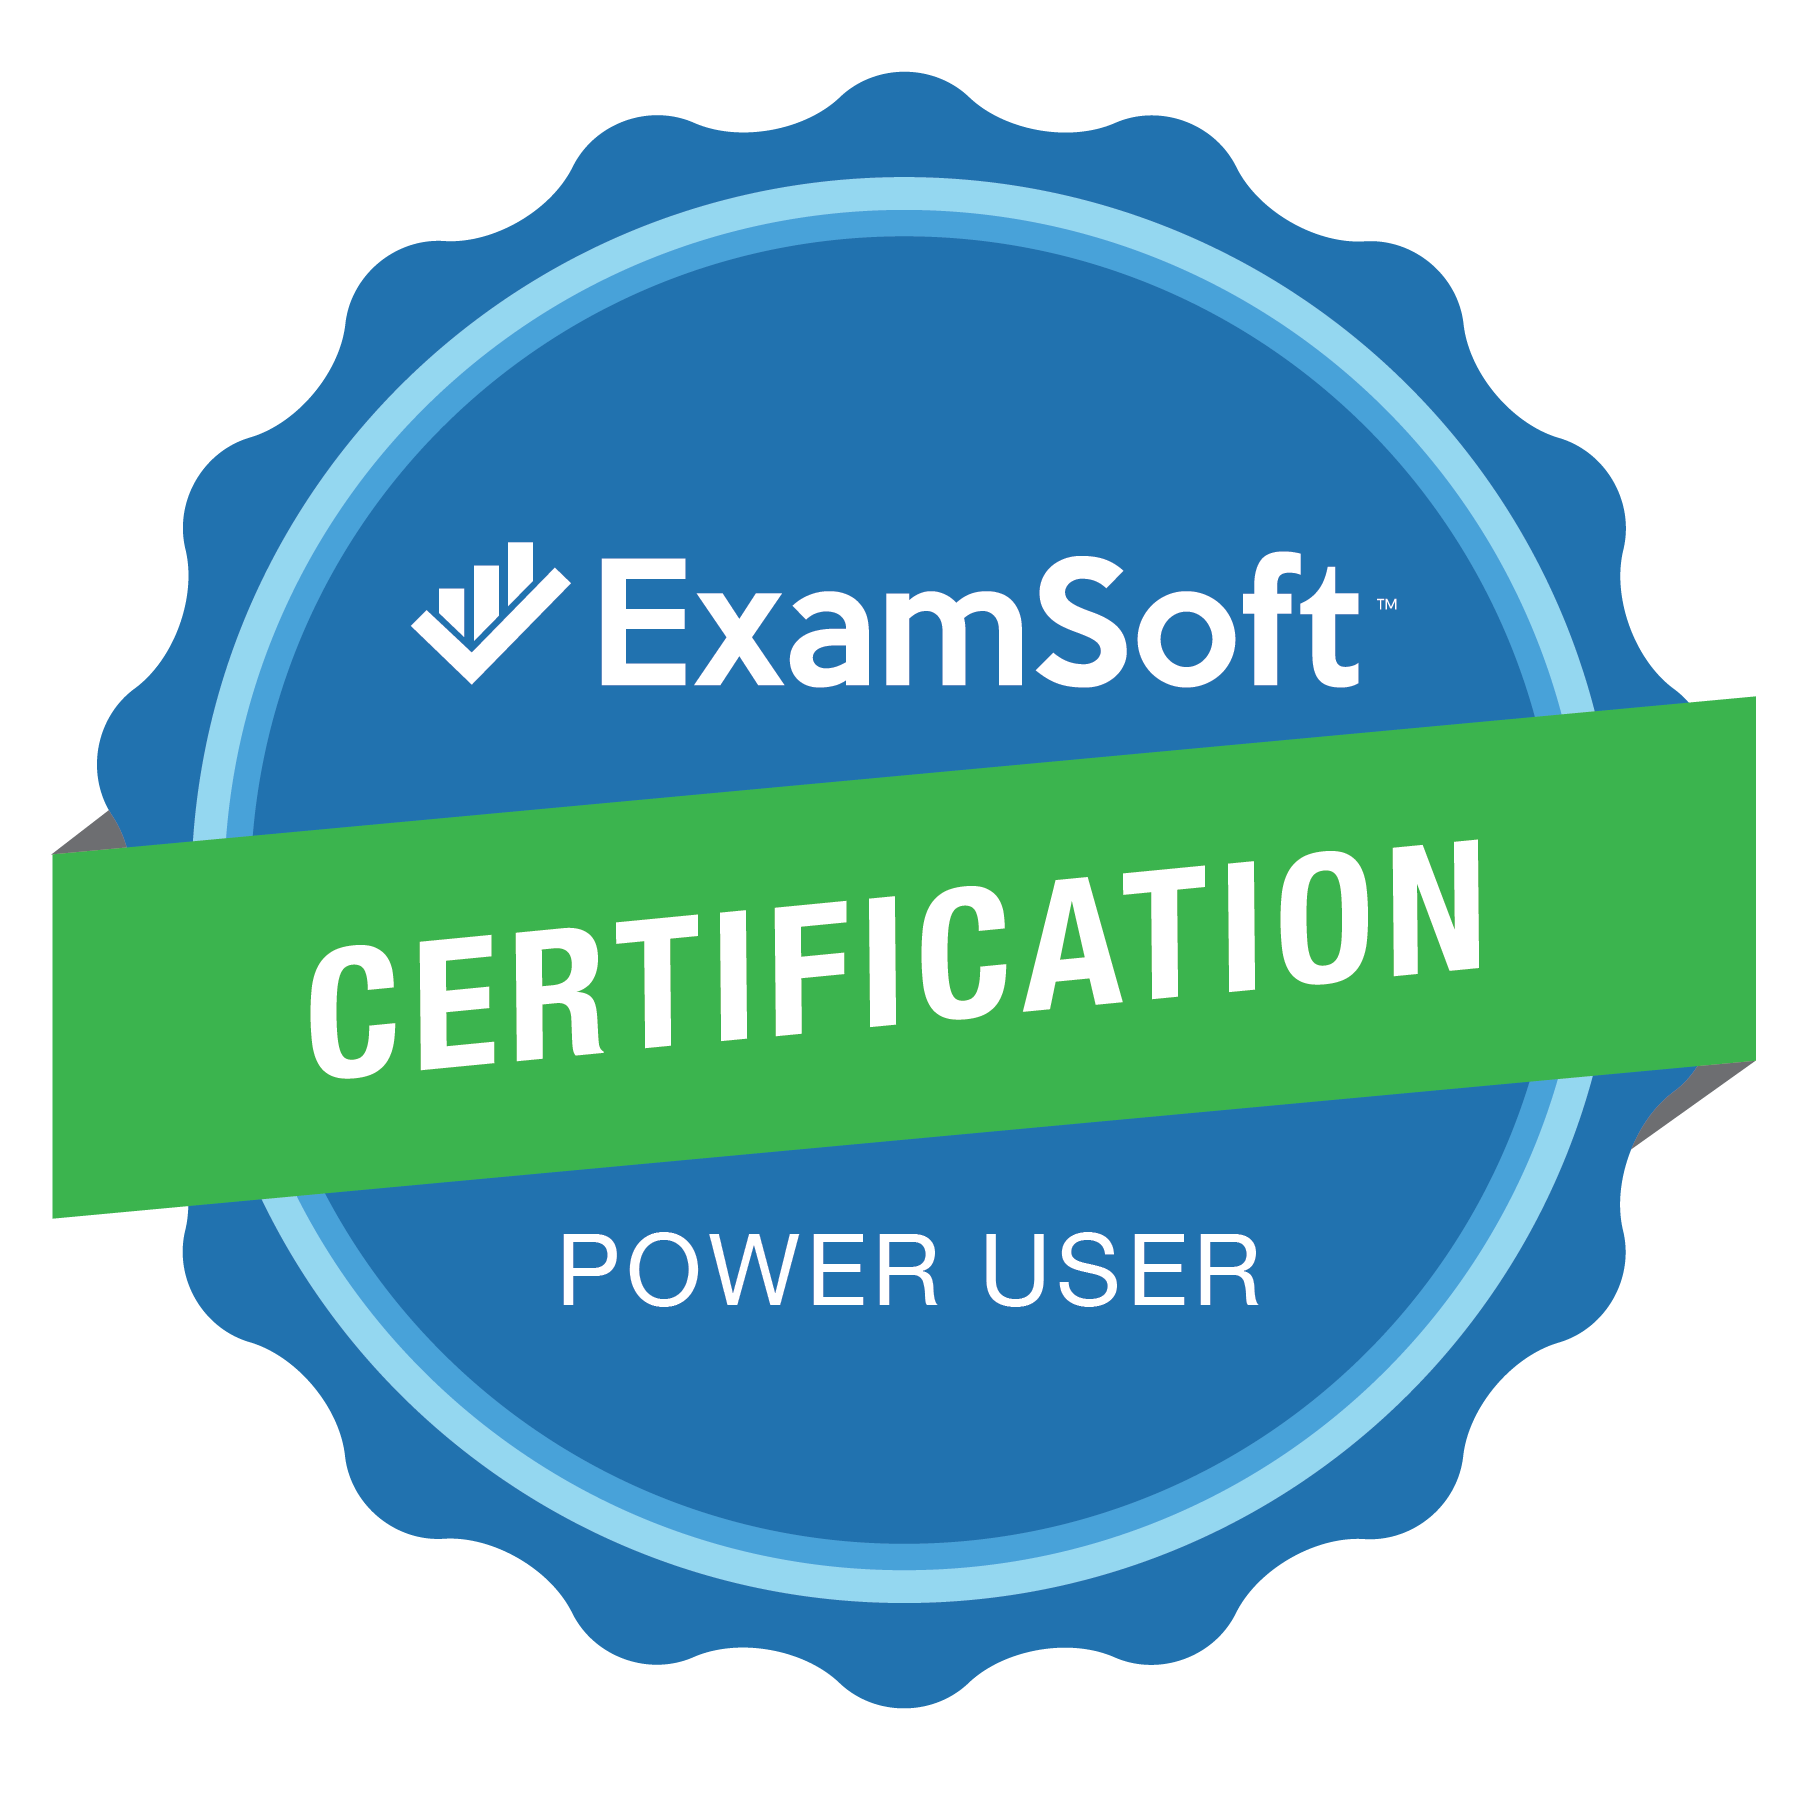 The ExamSoft Certification Power User Program Badge